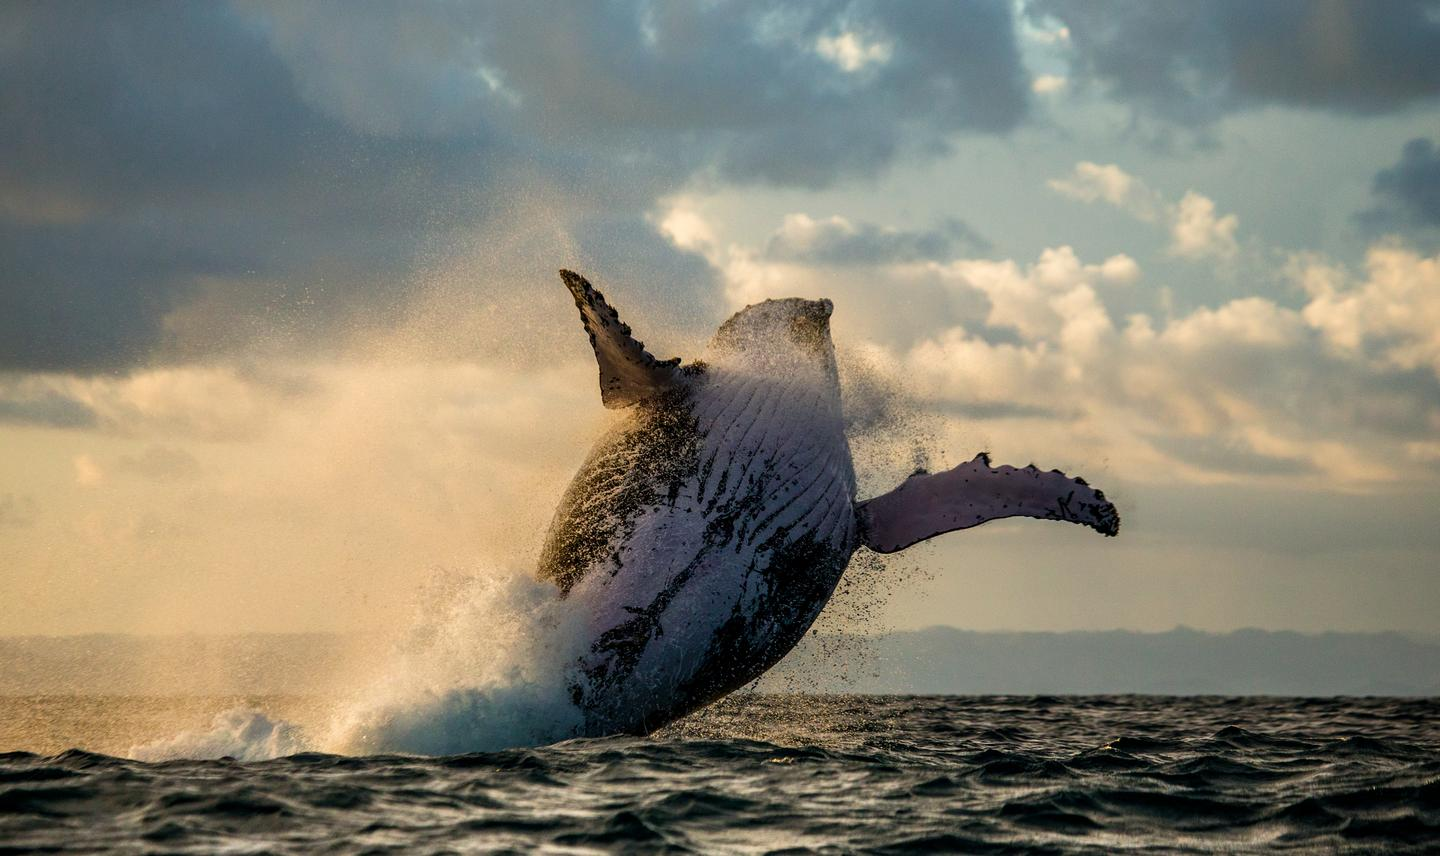 The researchers say that whale songs are one of the most striking examples of social learning in non-human animals